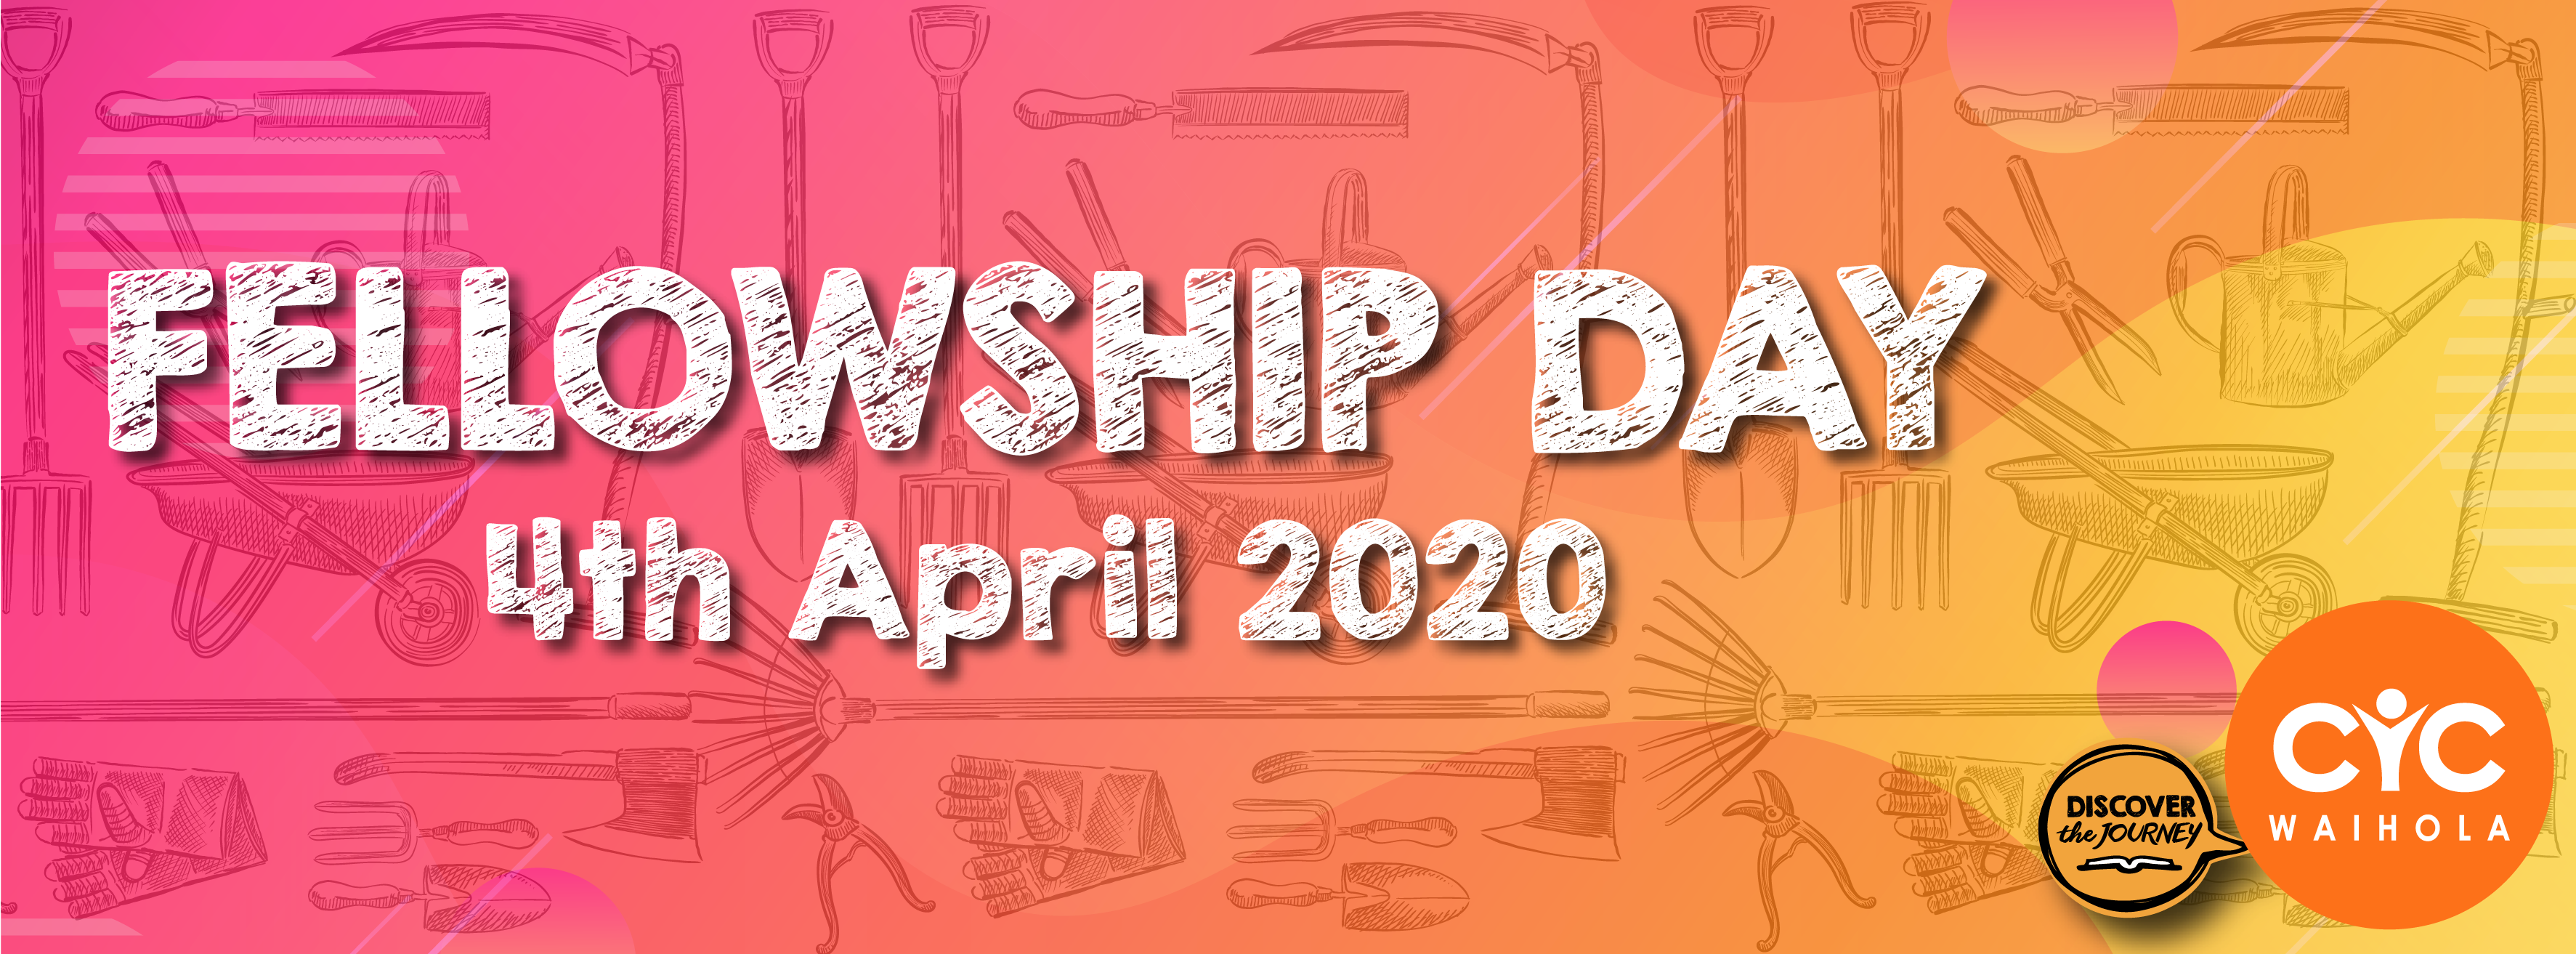 Fellowship Day – 4th April 2020